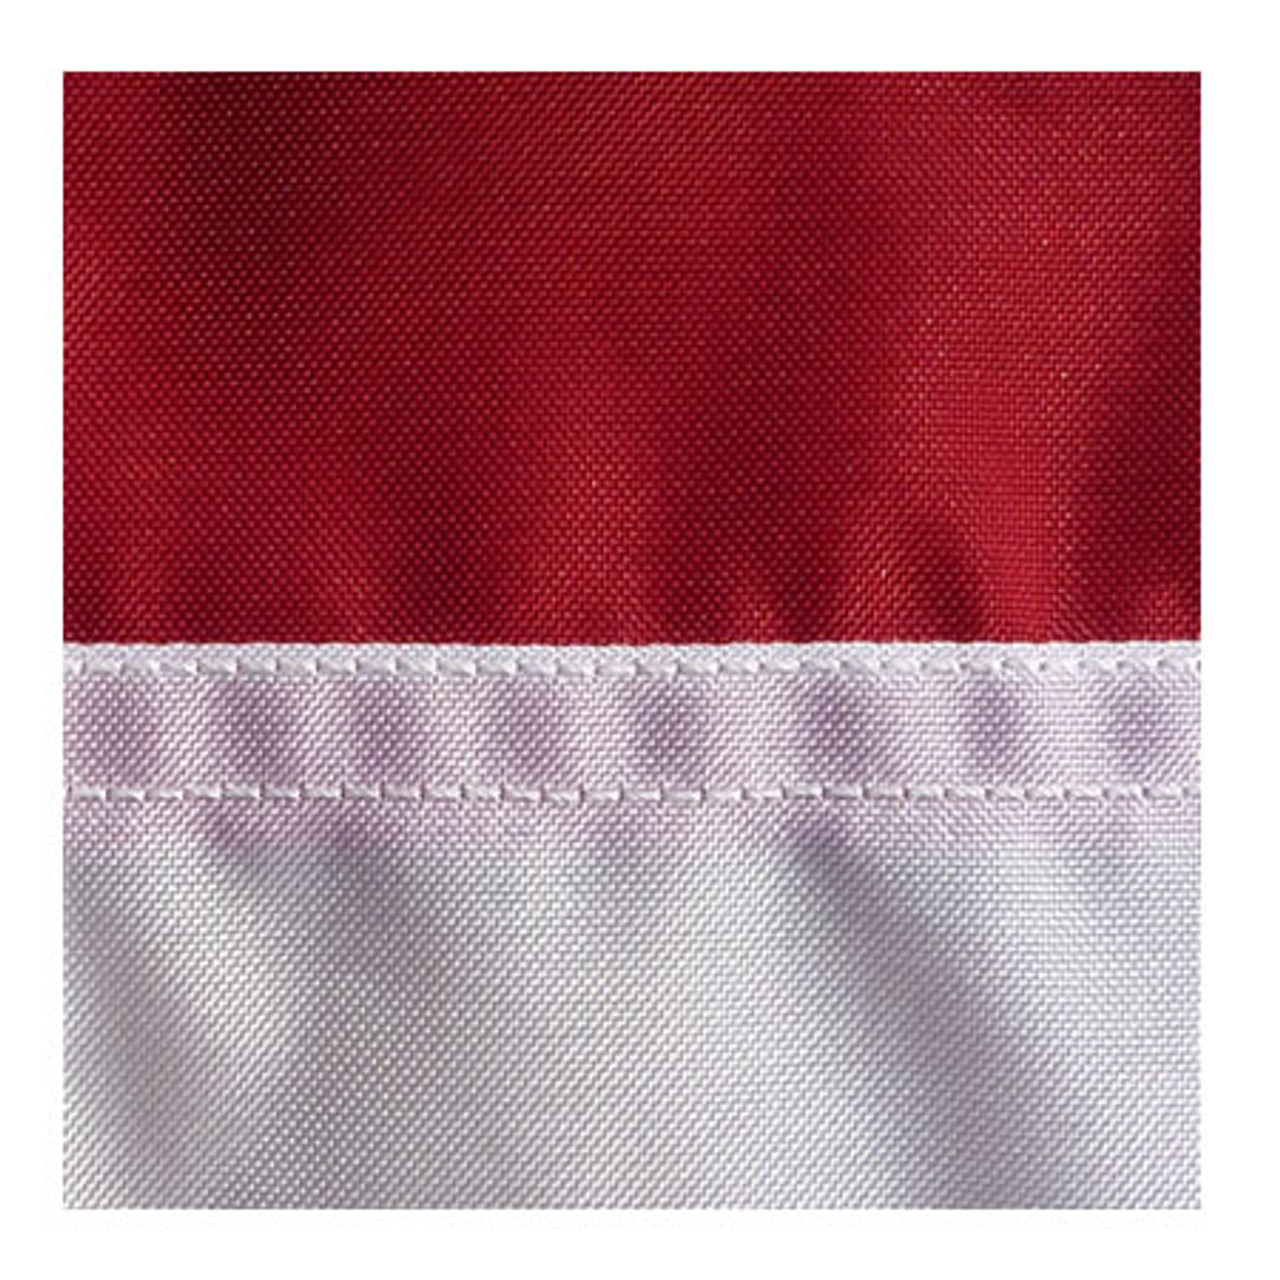 15' x 25' Nylon Texas Flag